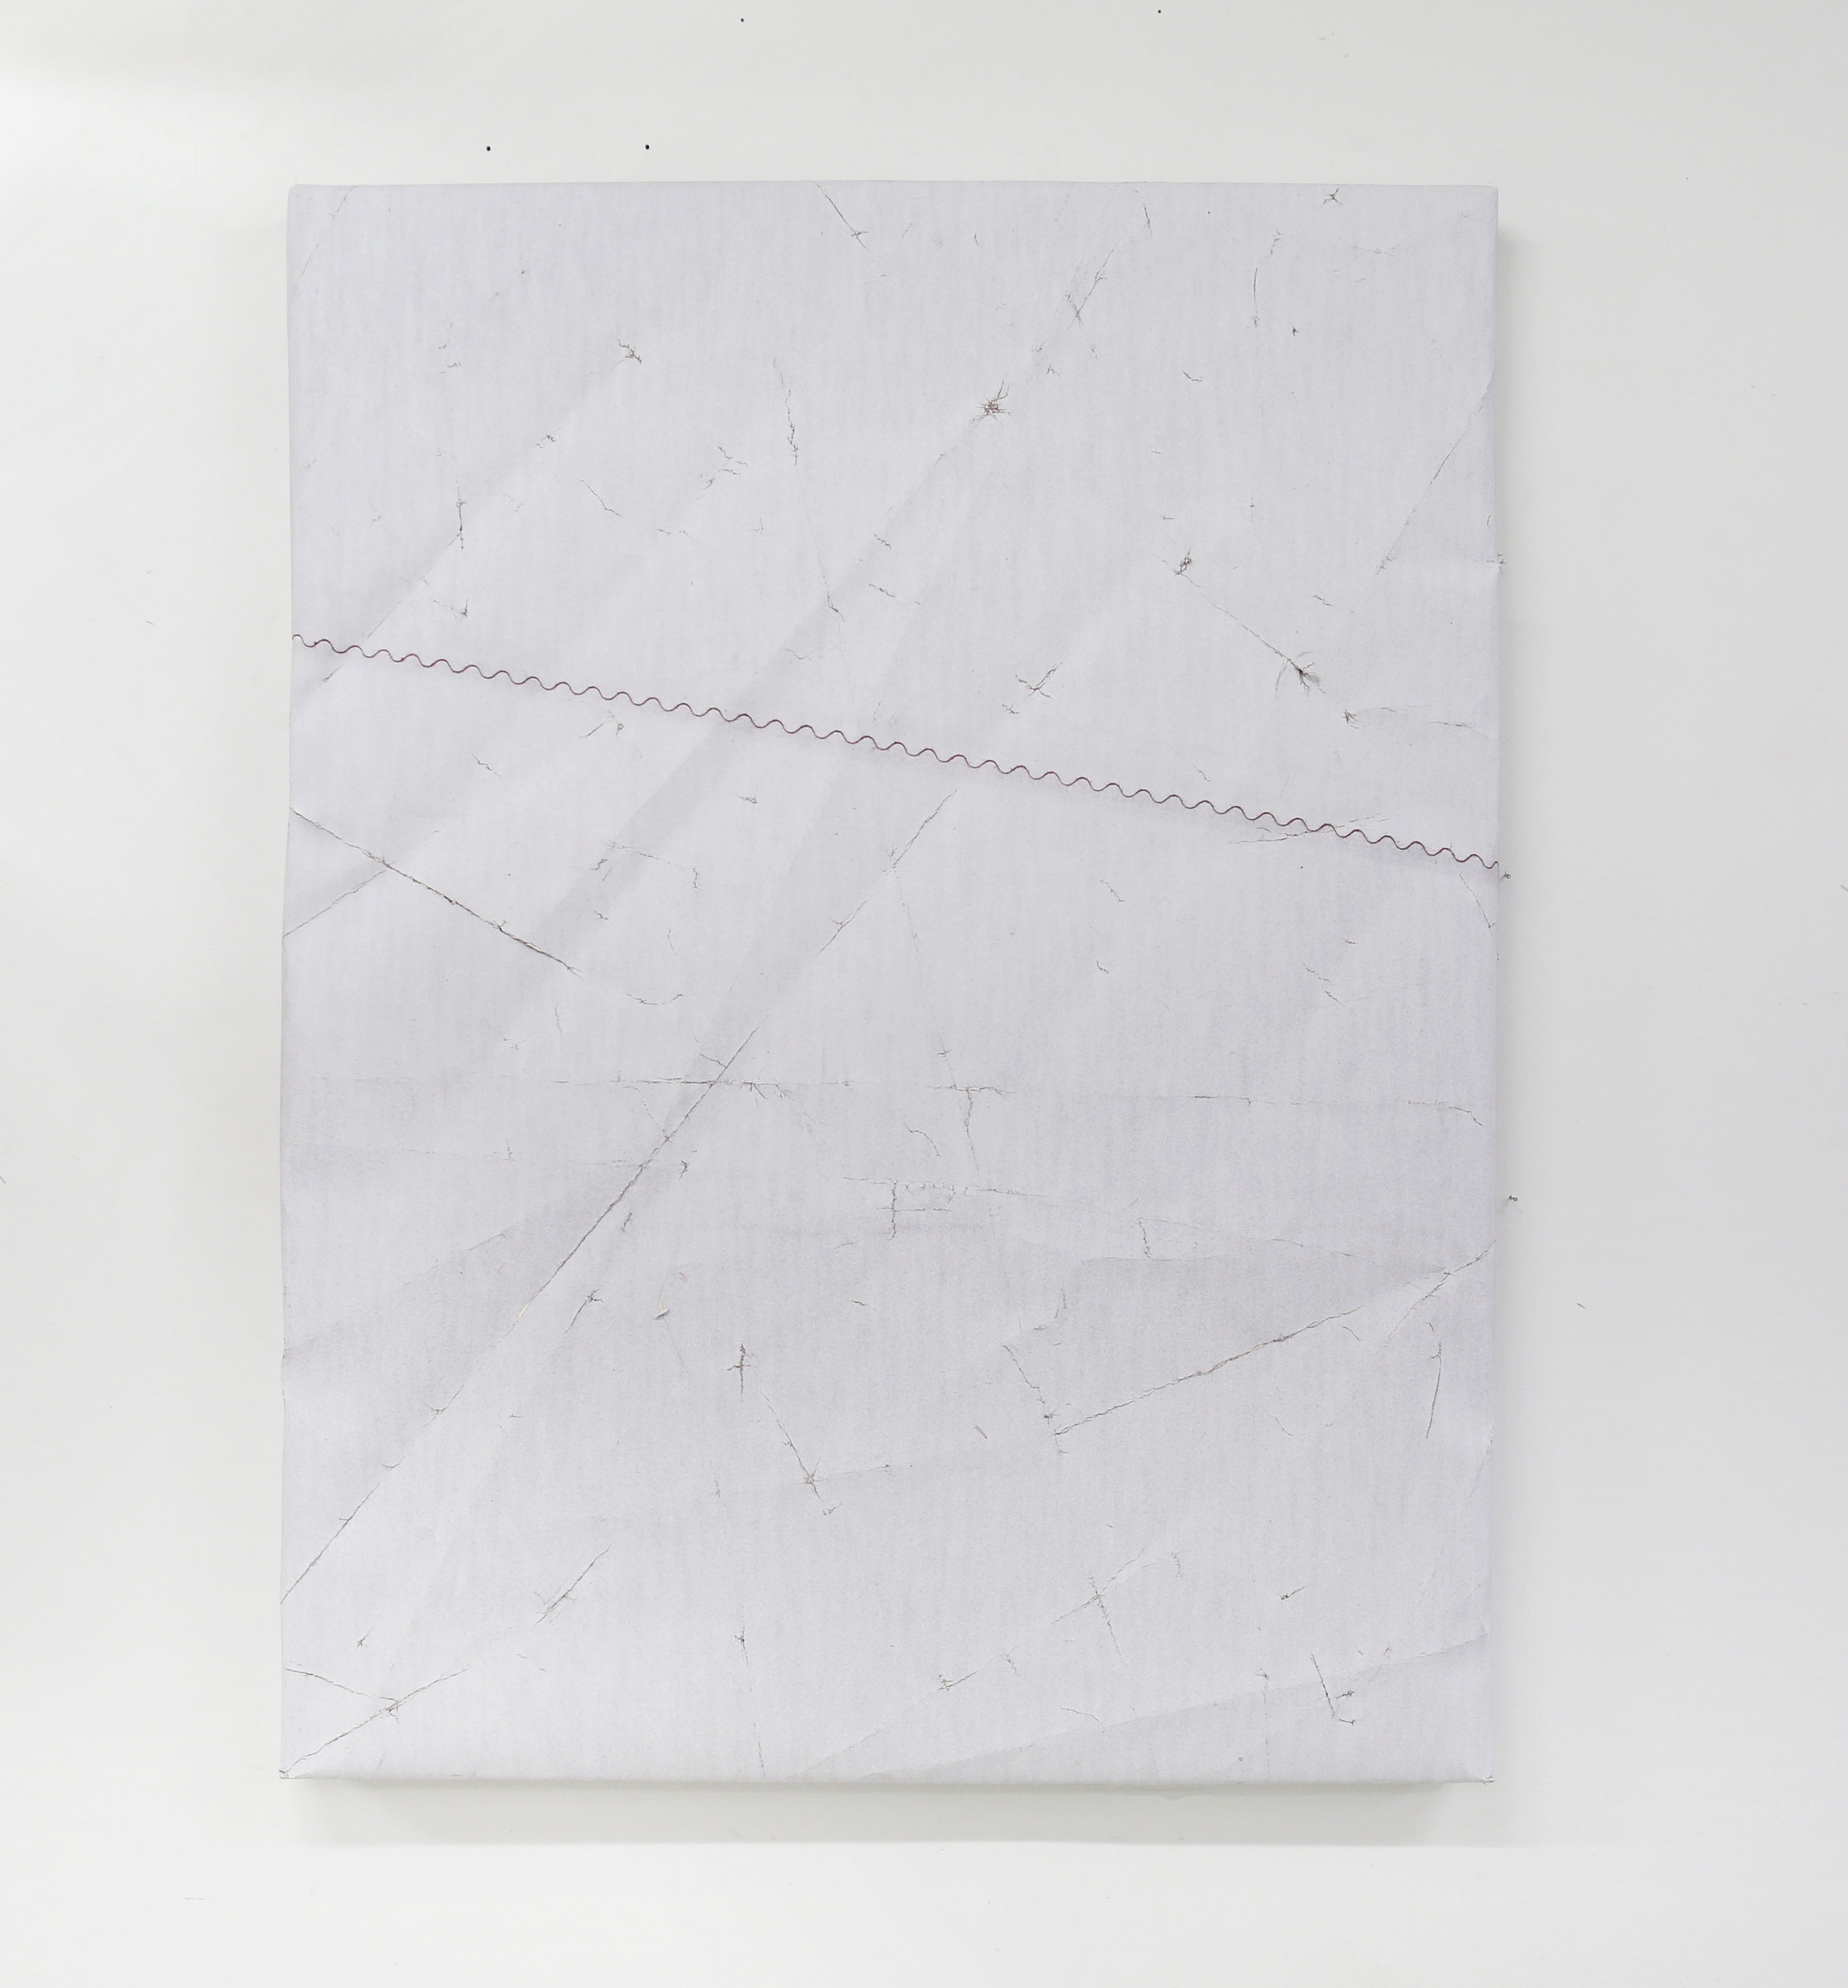 Untitled (White, 120 Grit)